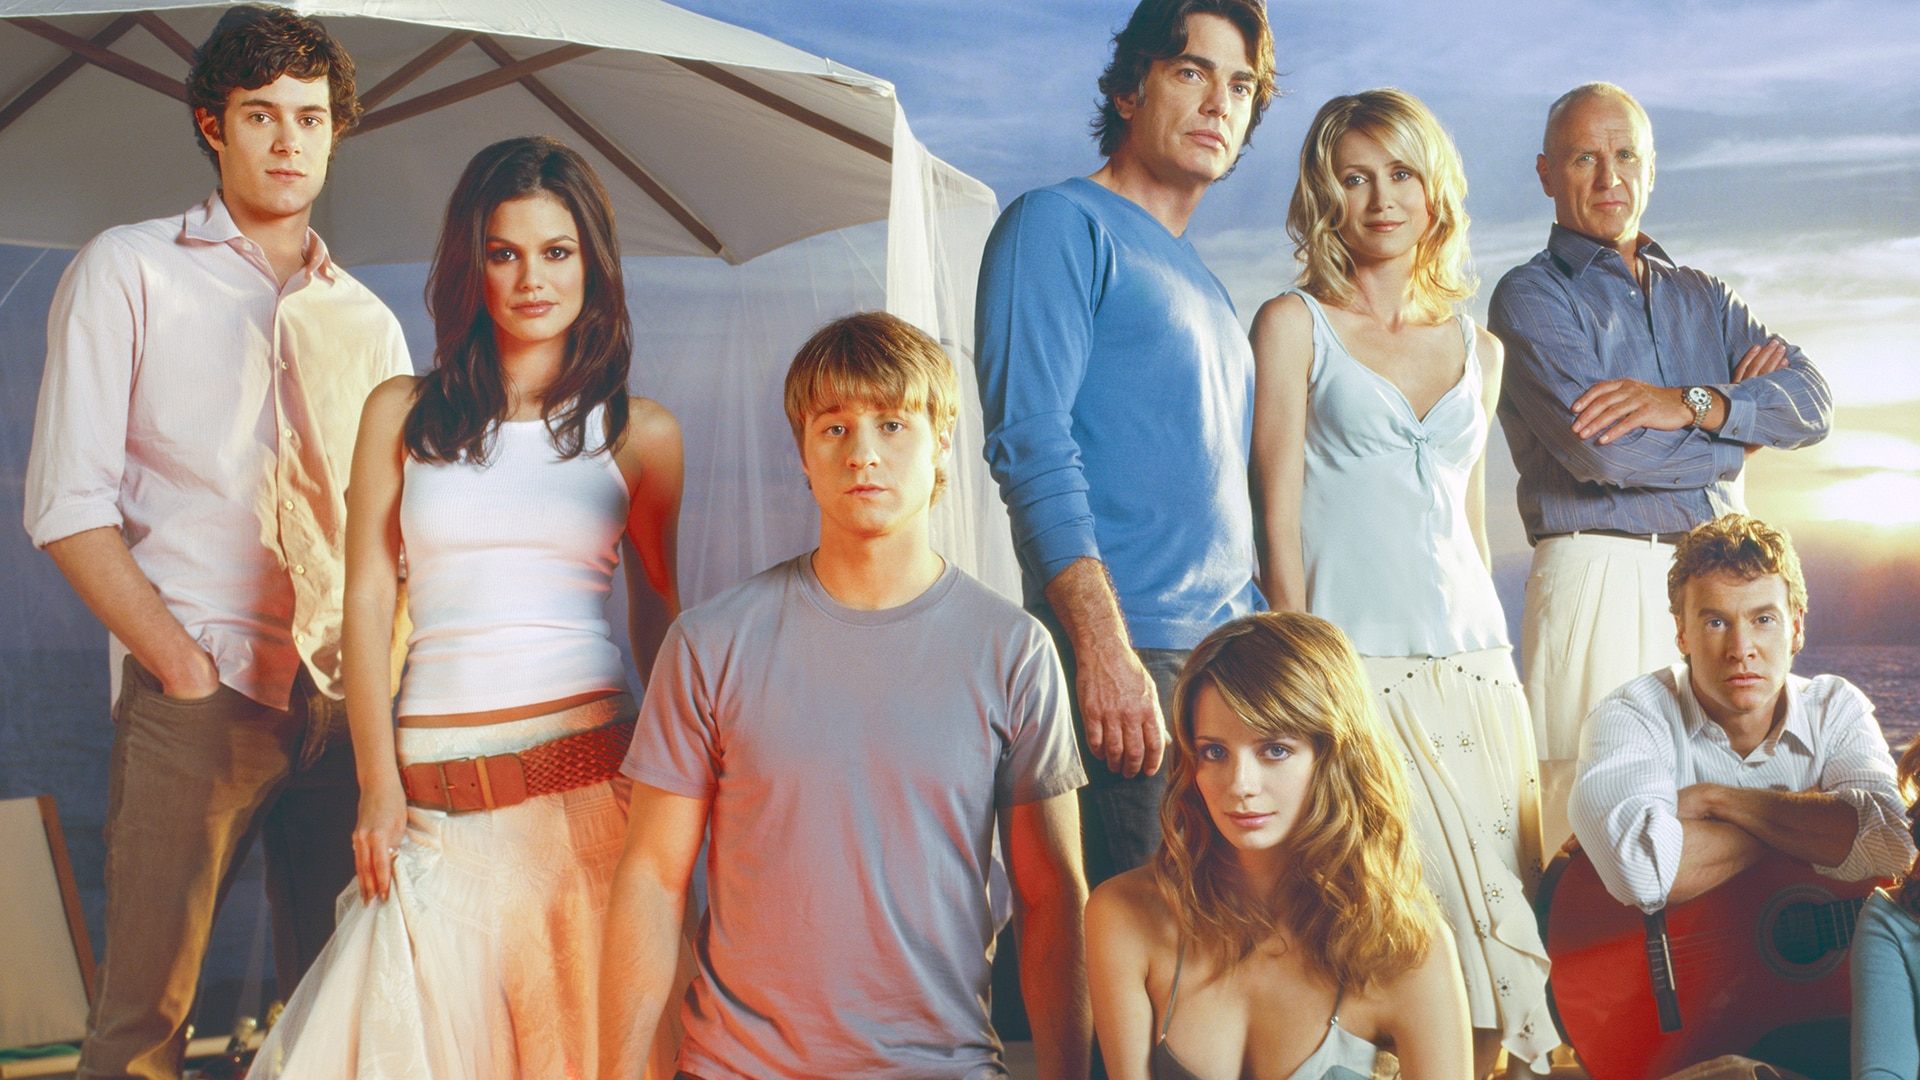 The O.C. - All 4